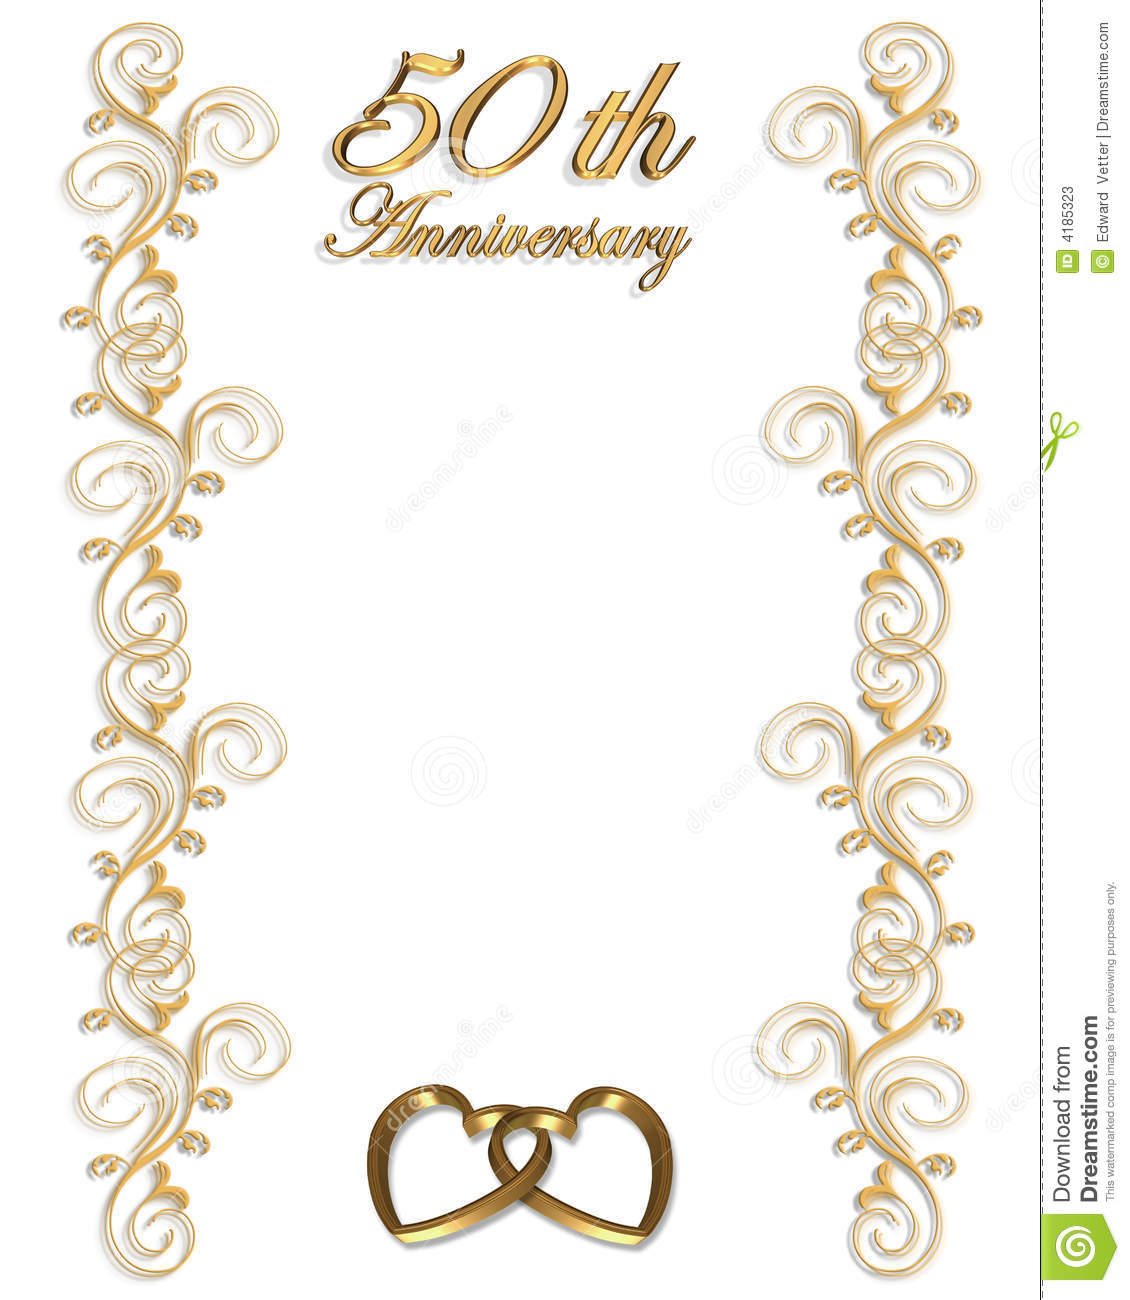 50th birthday border clip art ; 5d5f6075ca580ac5d8c7fa2ae86ab3f0